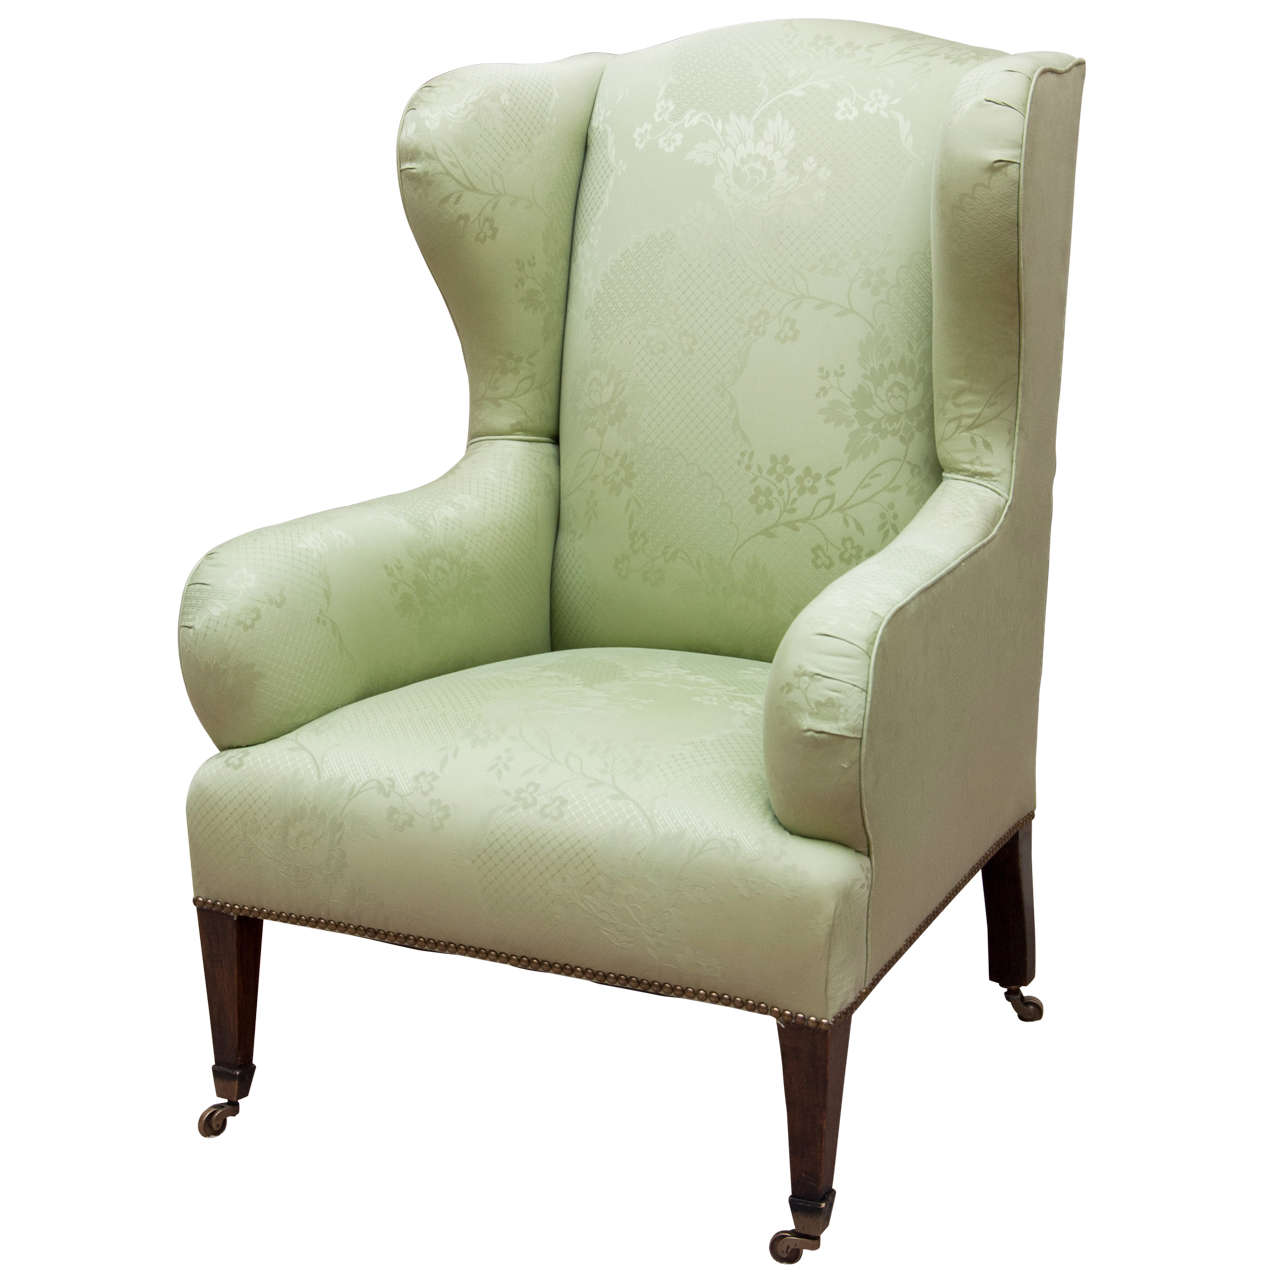 colonial wingback sofas high sleeper with sofa bed underneath regency mahogany leg wing chair in damask at 1stdibs